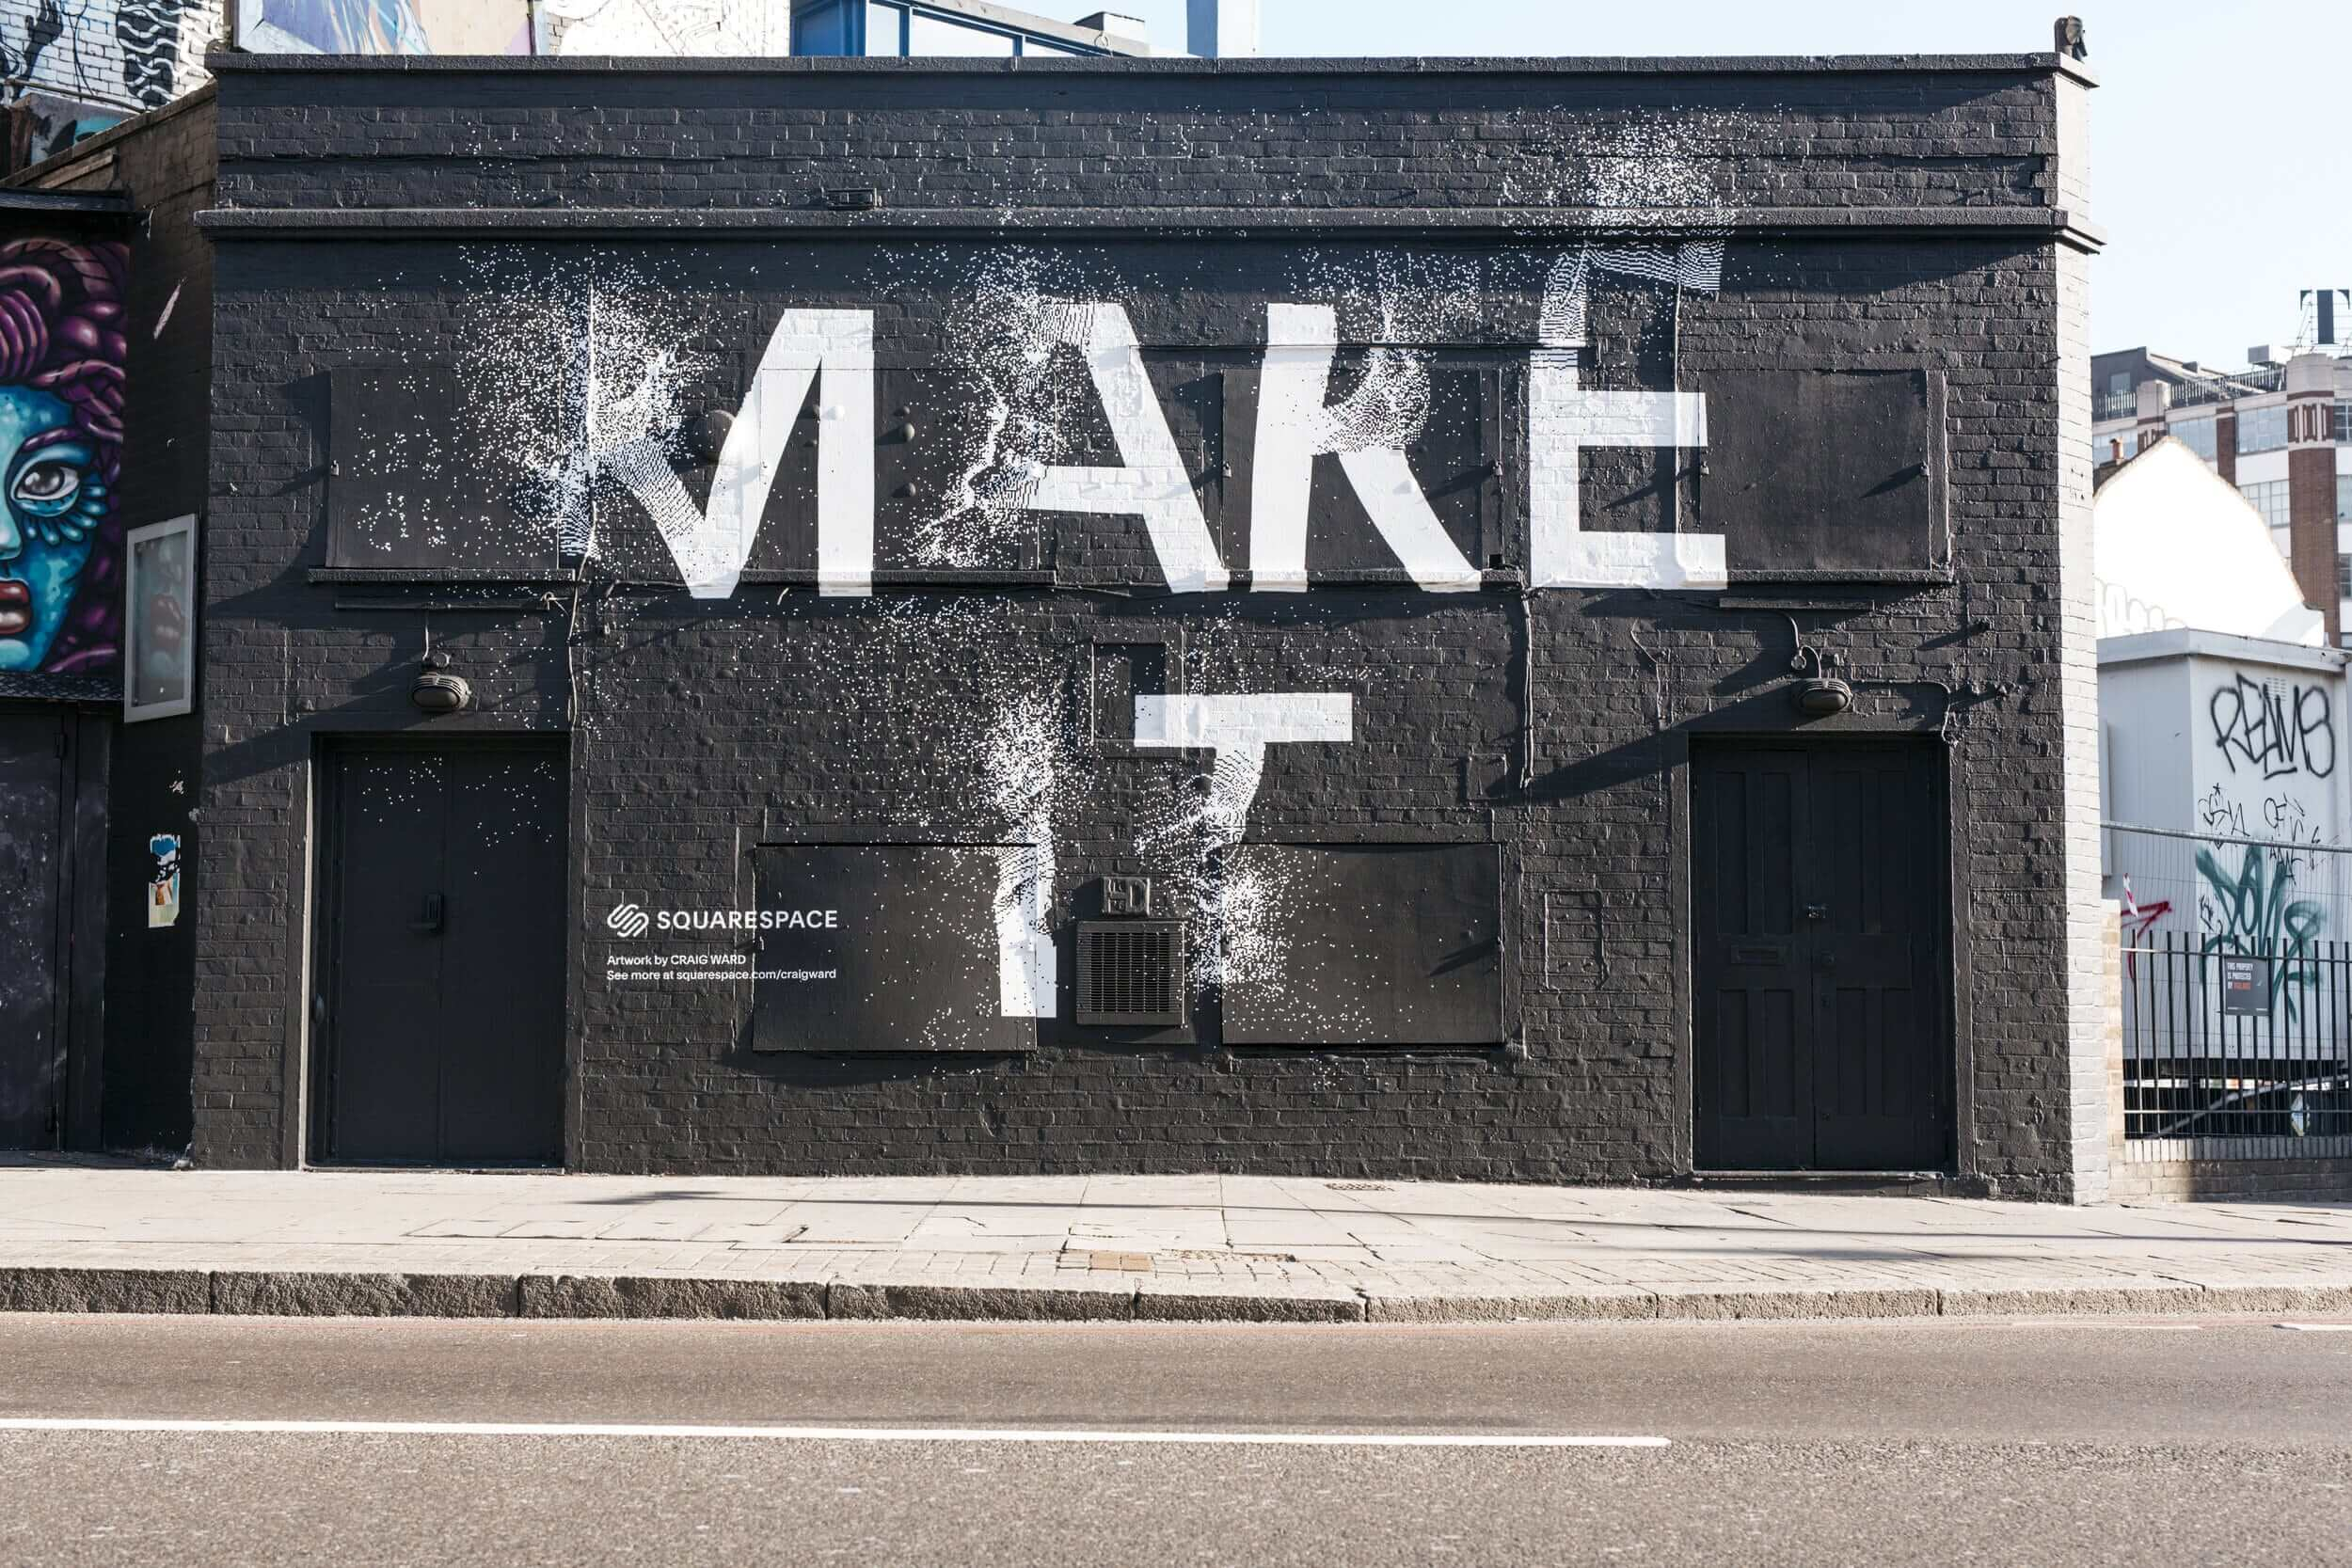 Designer Interview With Craig Ward - squarespace_mural